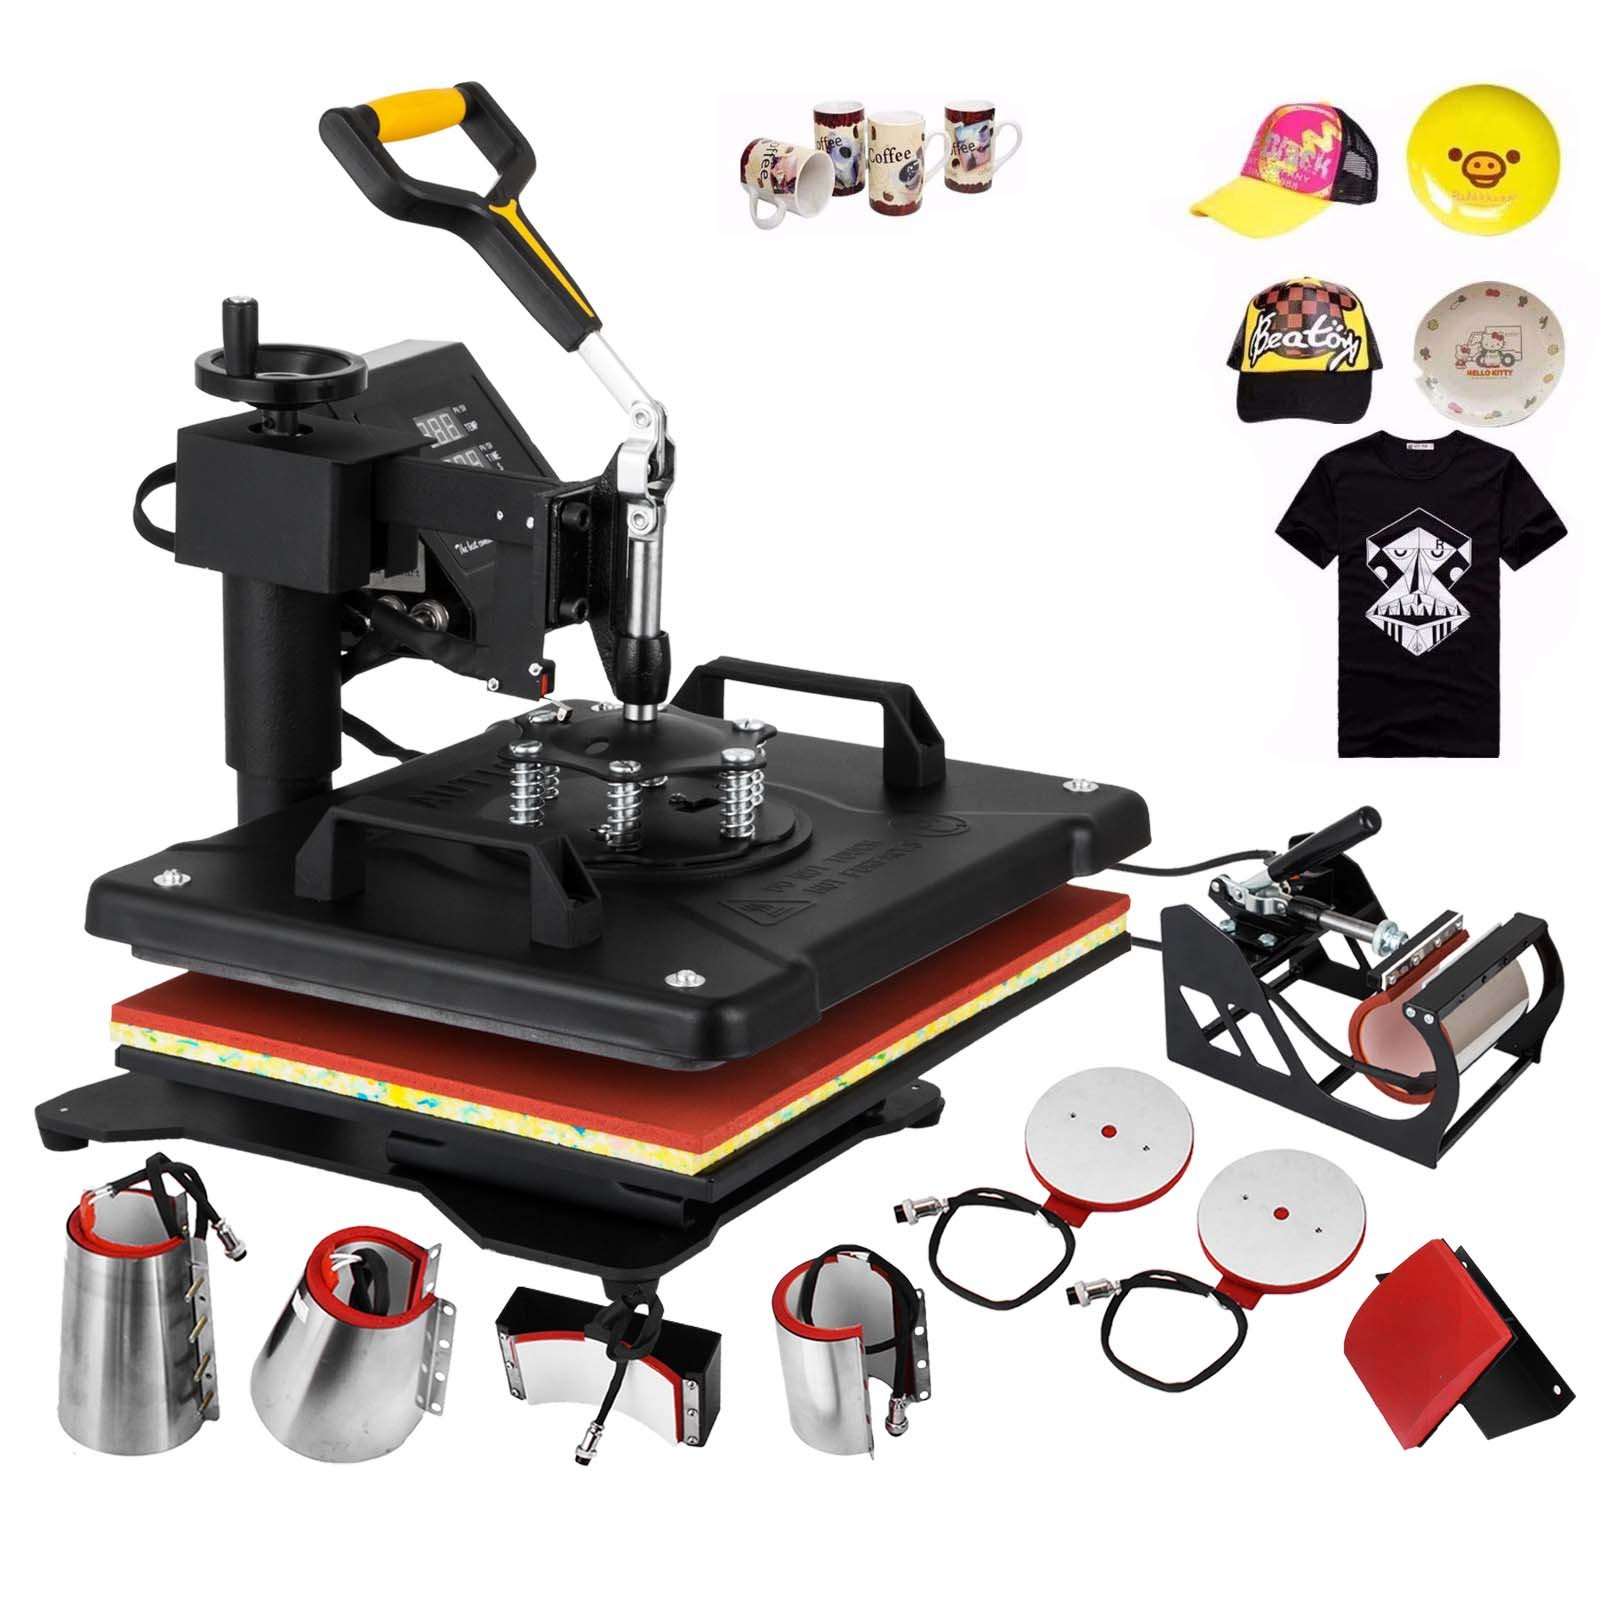 VEVOR Heat Press Machine 15x15Inch Combo Heat Press Transfer Machine with Multifunctional Digital Cap Press Cup Press Plate Press 8IN1 T-Shirt Heat Press Machine